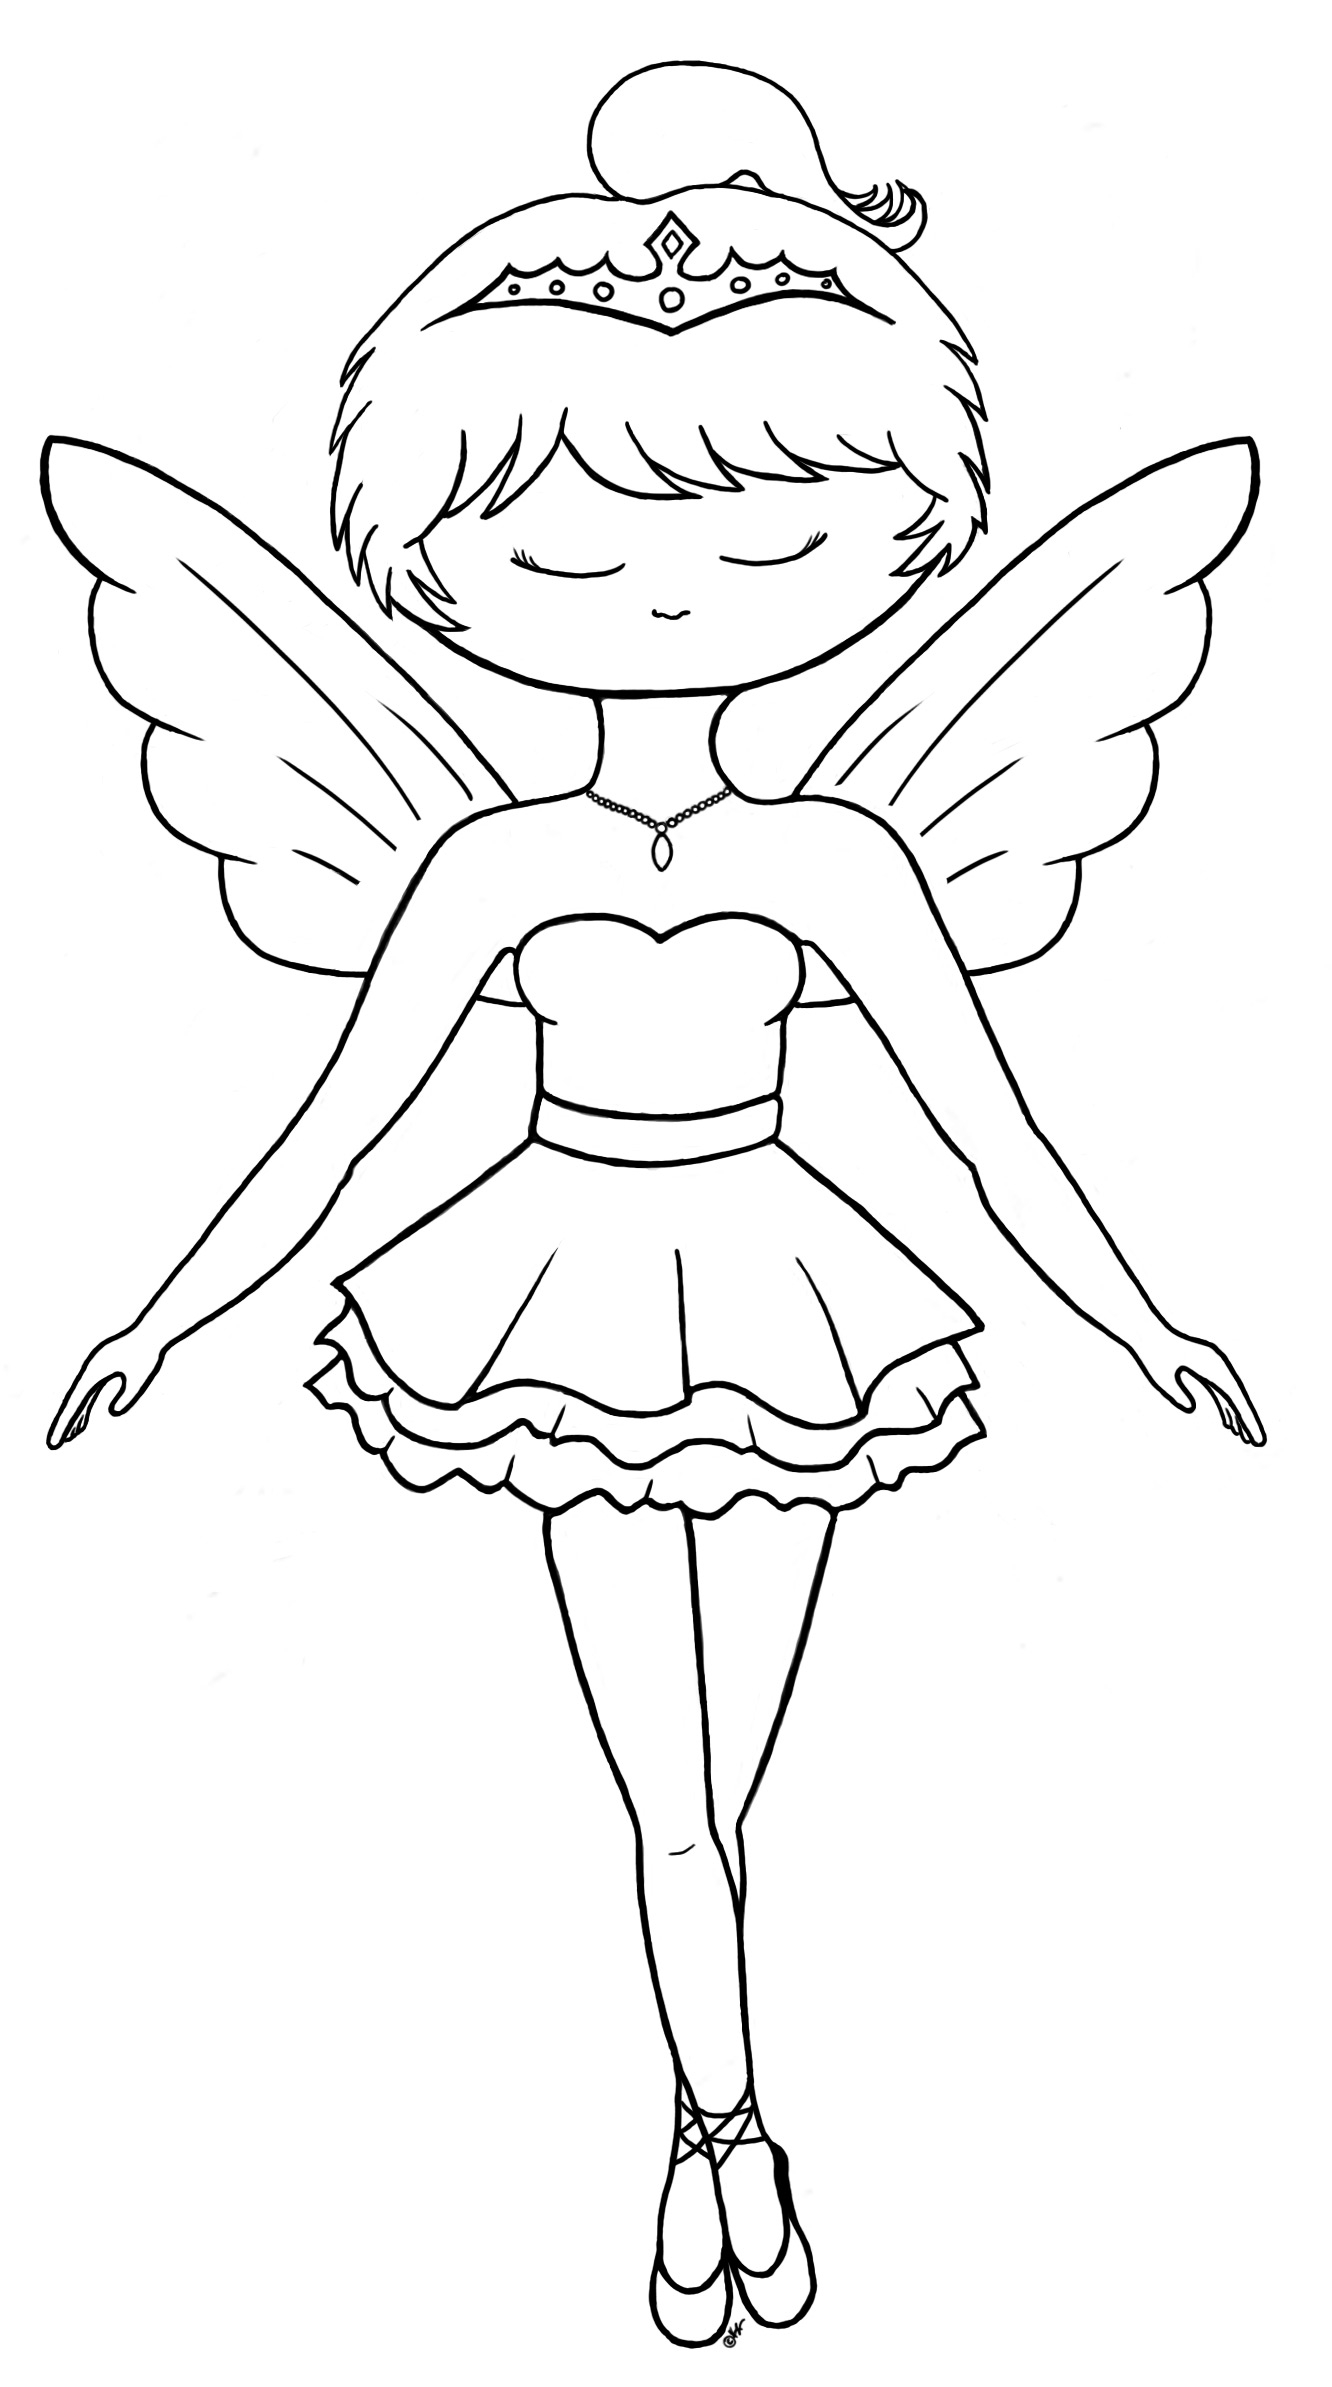 Ballerina Coloring Pages For Kids Printable Ballerina Coloring Pages For Kids Coloringstar